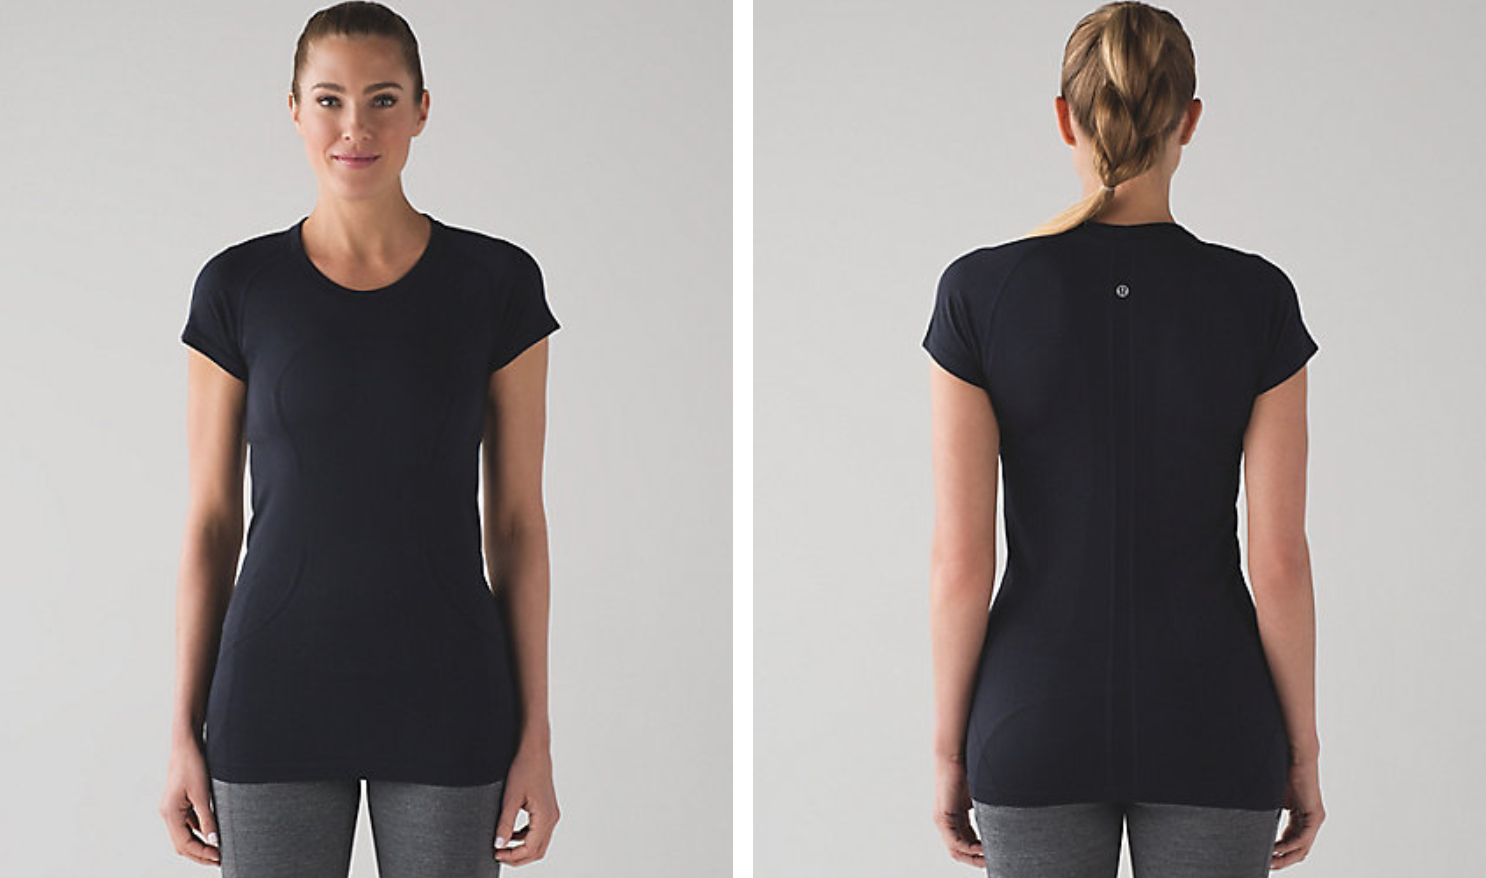 https://api.shopstyle.com/action/apiVisitRetailer?url=https%3A%2F%2Fshop.lululemon.com%2Fp%2Ftops-short-sleeve%2FRun-Swiftly-Tech-Short-Sleeve-Crew%2F_%2Fprod4650006%3Frcnt%3D6%26N%3D1z13ziiZ7z5%26cnt%3D38%26color%3DLW3AK4S_028839&site=www.shopstyle.ca&pid=uid6784-25288972-7